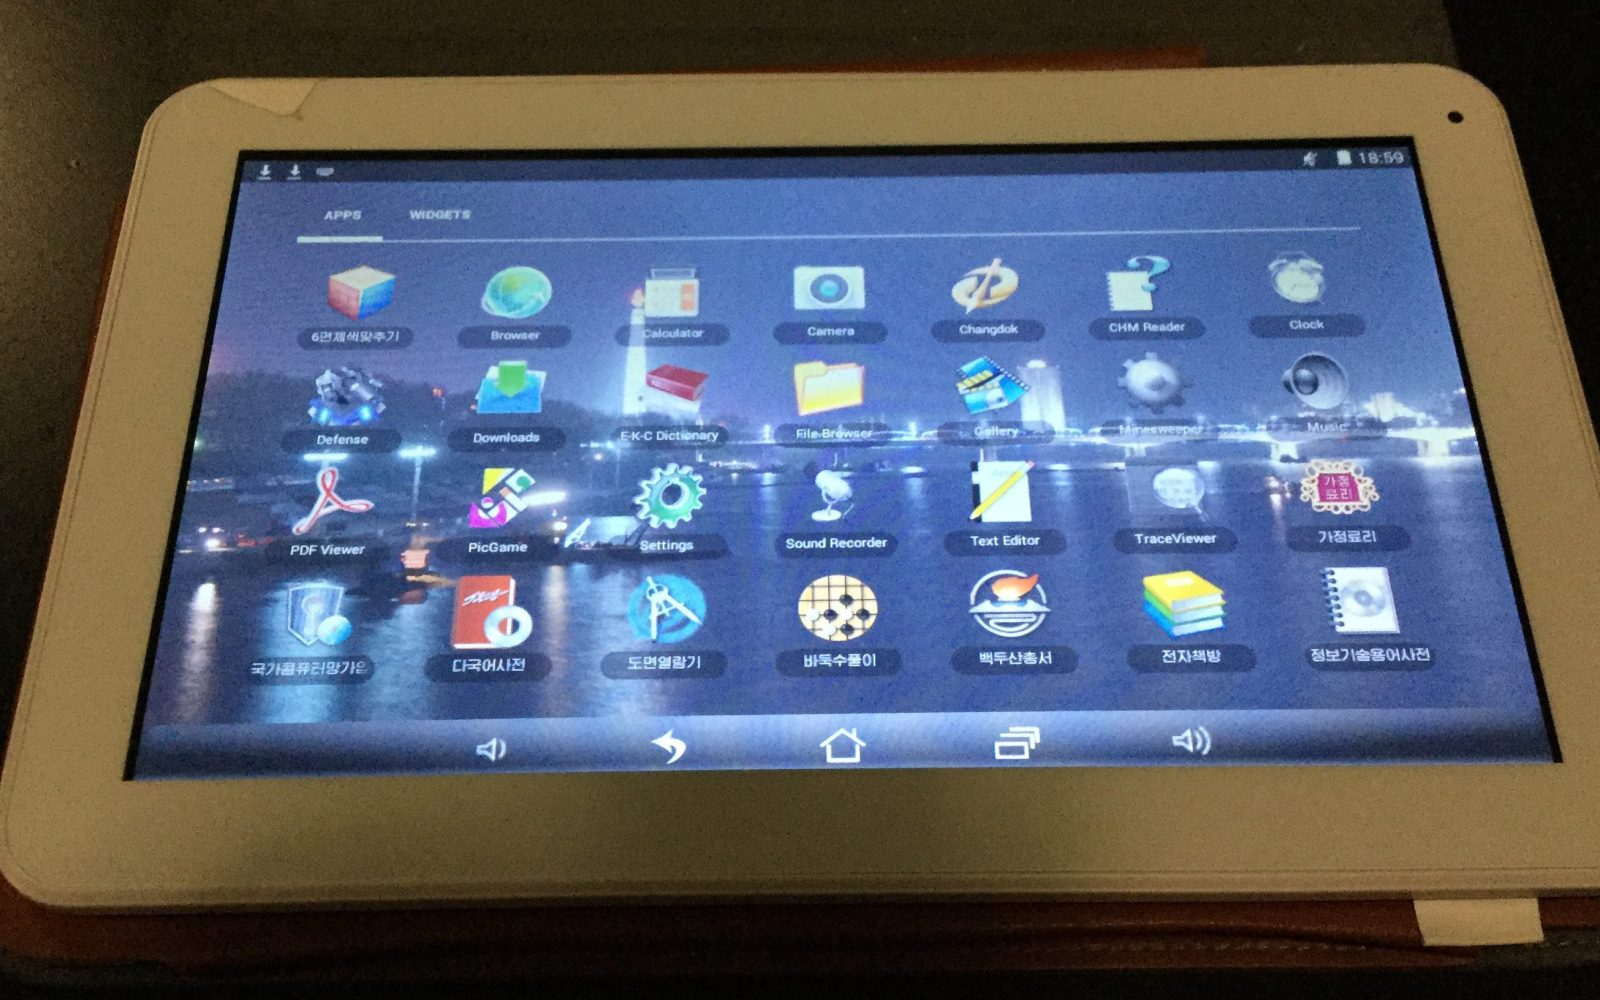 North Korea's locked down Android tablet takes a screenshot every